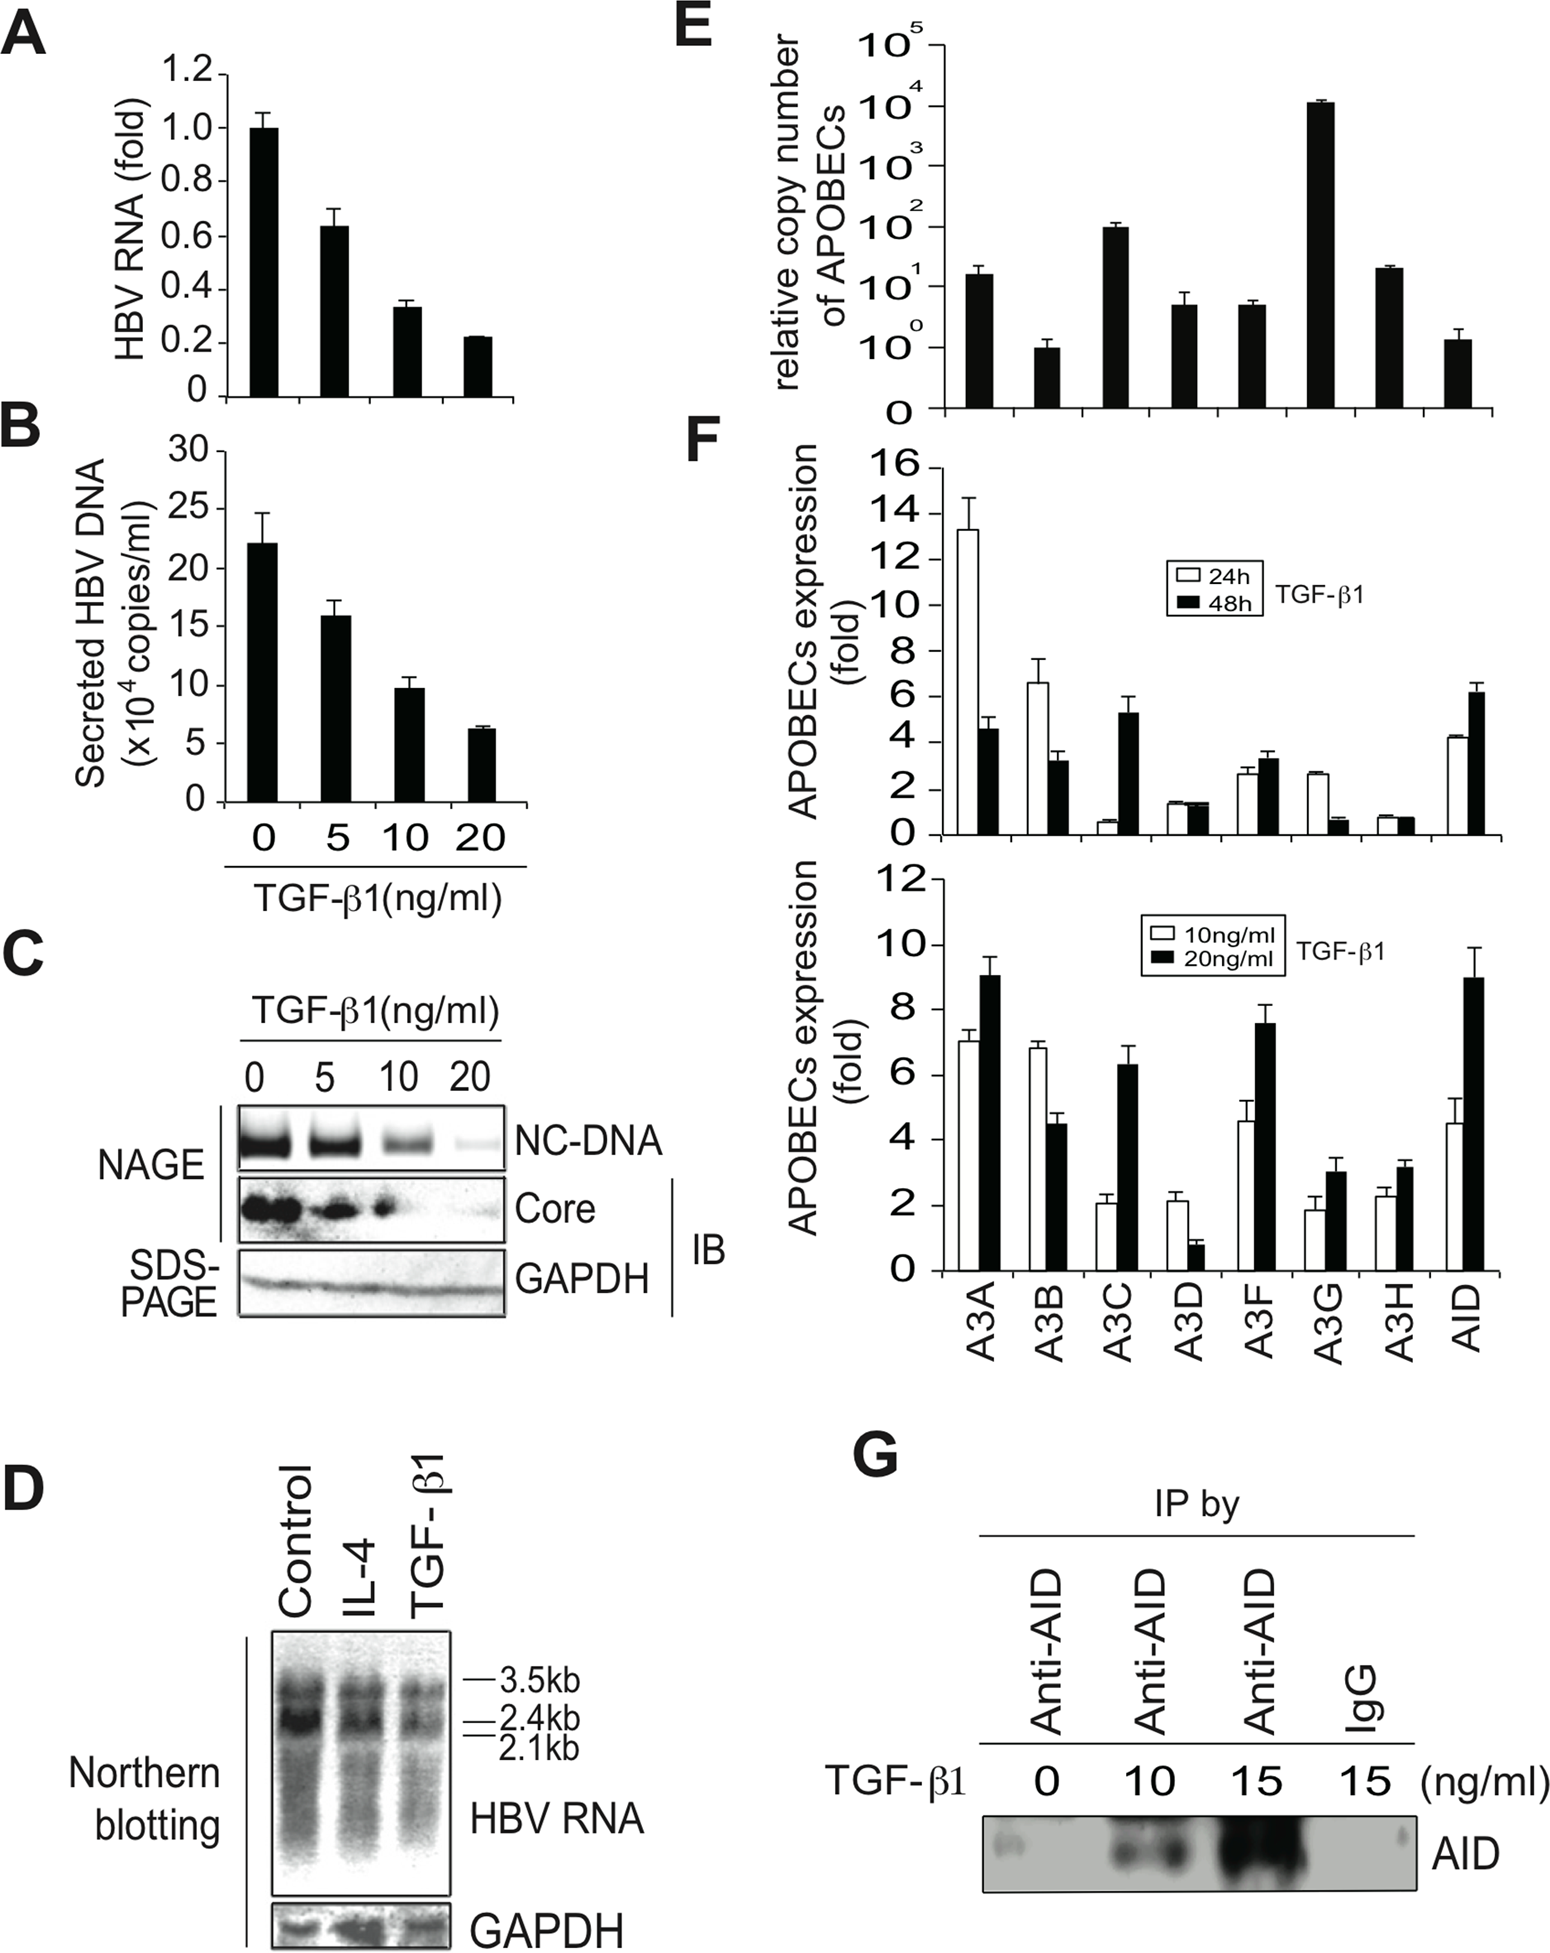 TGF-β1 upregulates APOBEC3 expression and suppresses HBV replication in Huh7 cells.